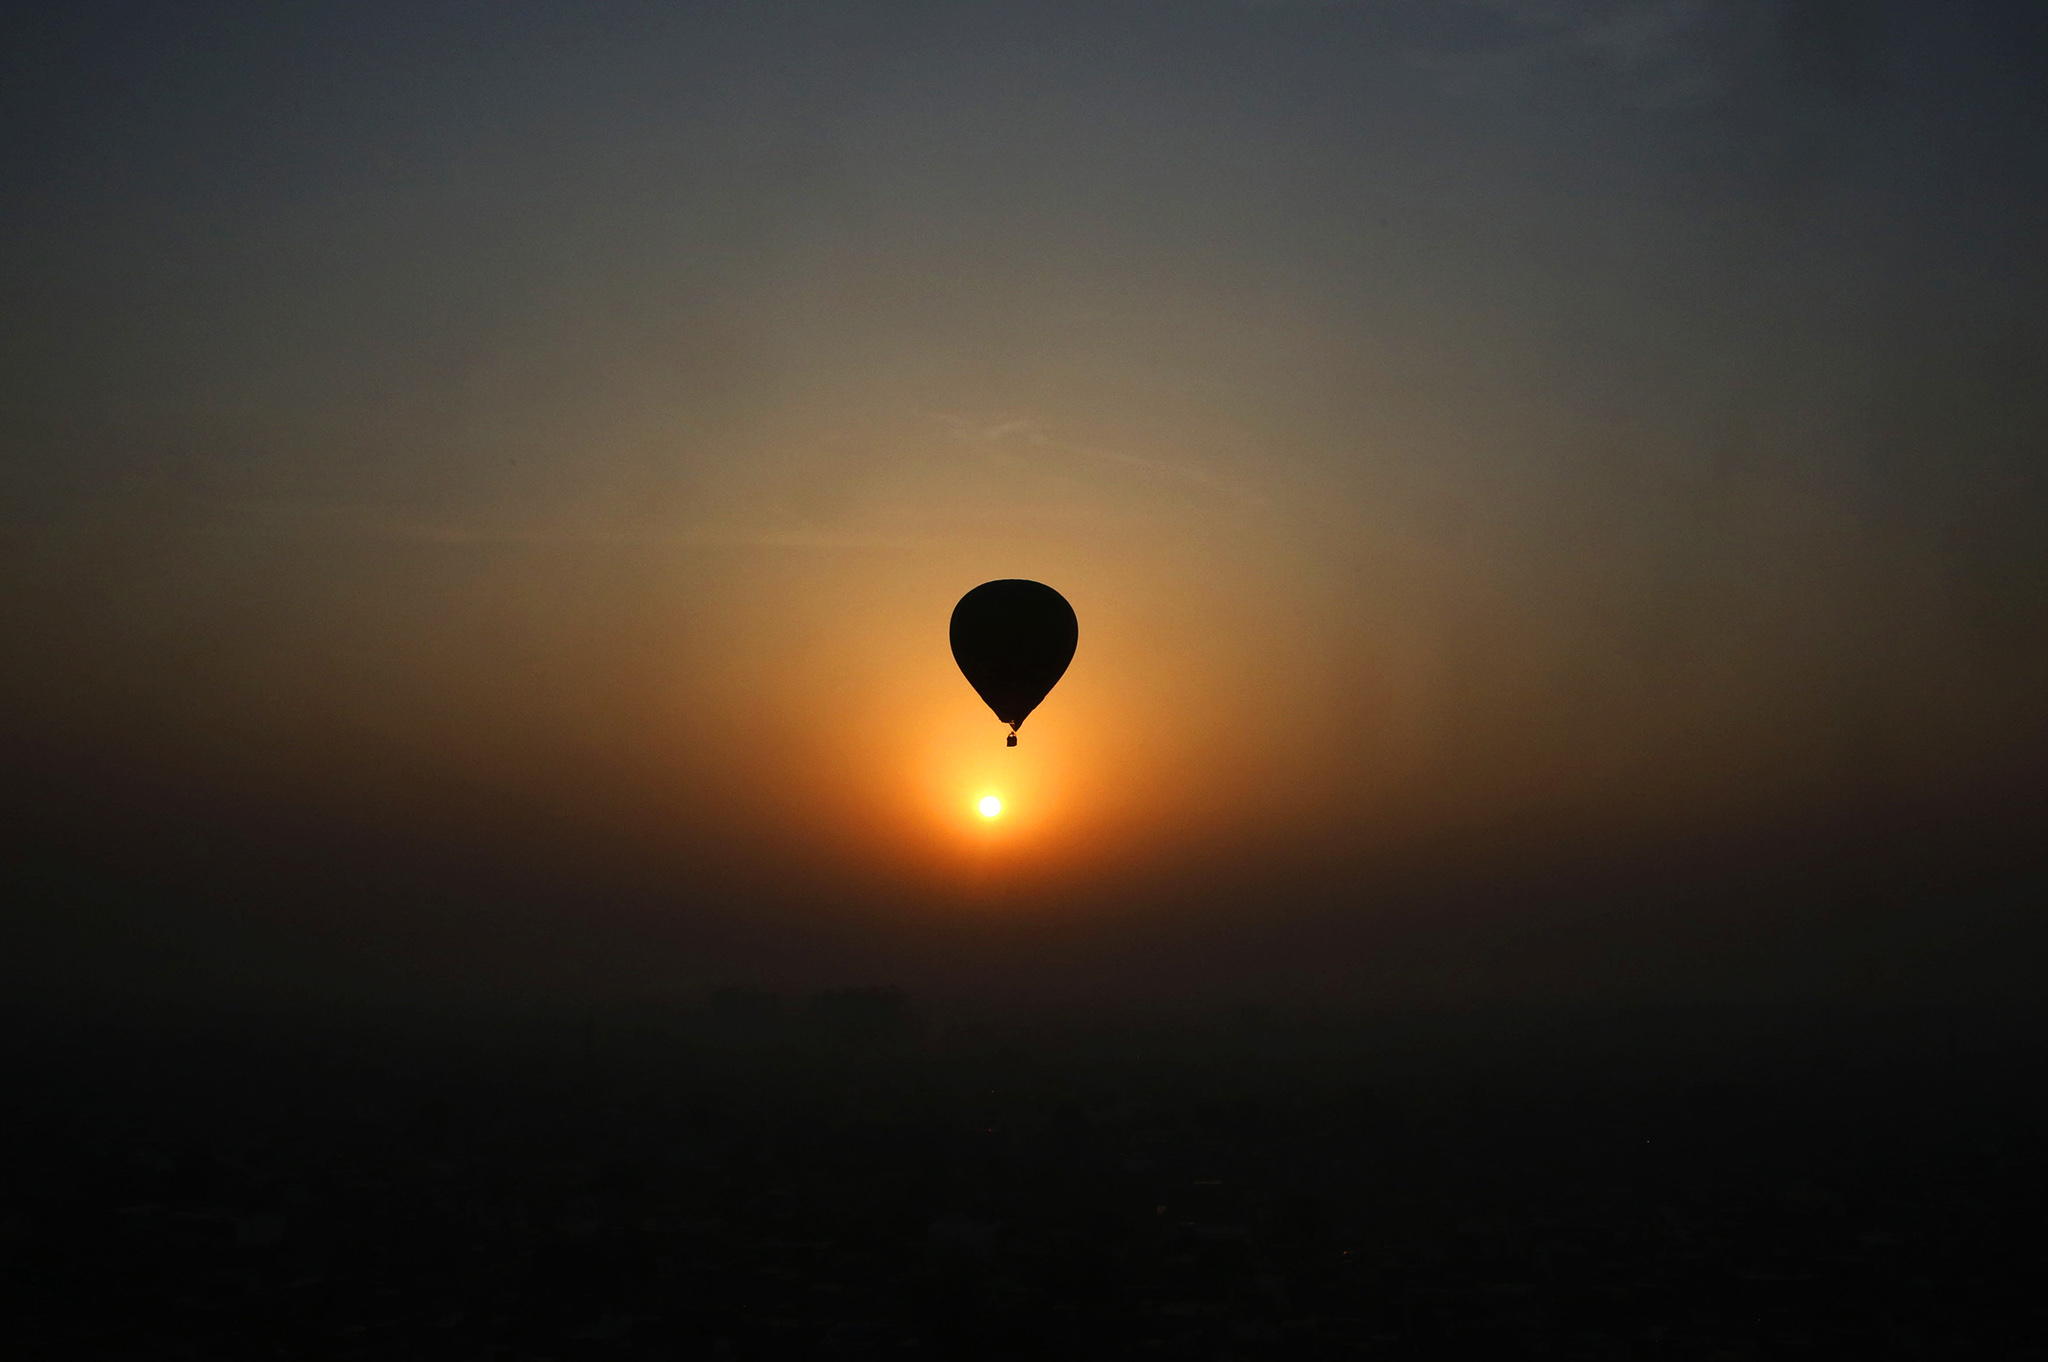 A hot air balloon flies against the sun rise during Lucknow balloon festival in Lucknow, India